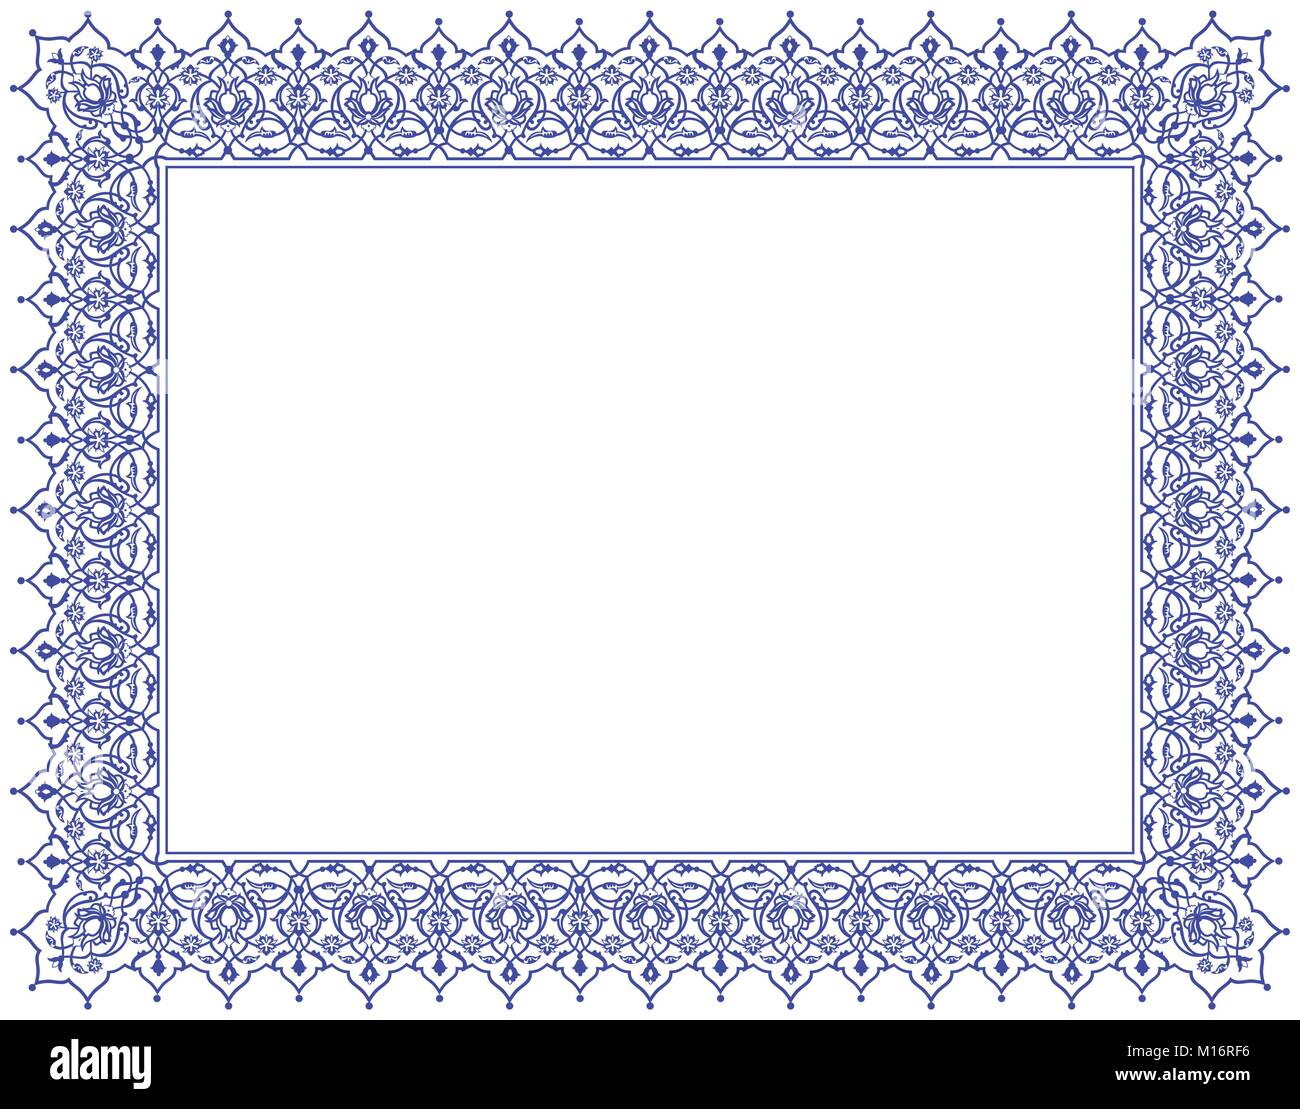 Certificate Frame Stock Photos & Certificate Frame Stock Images - Alamy